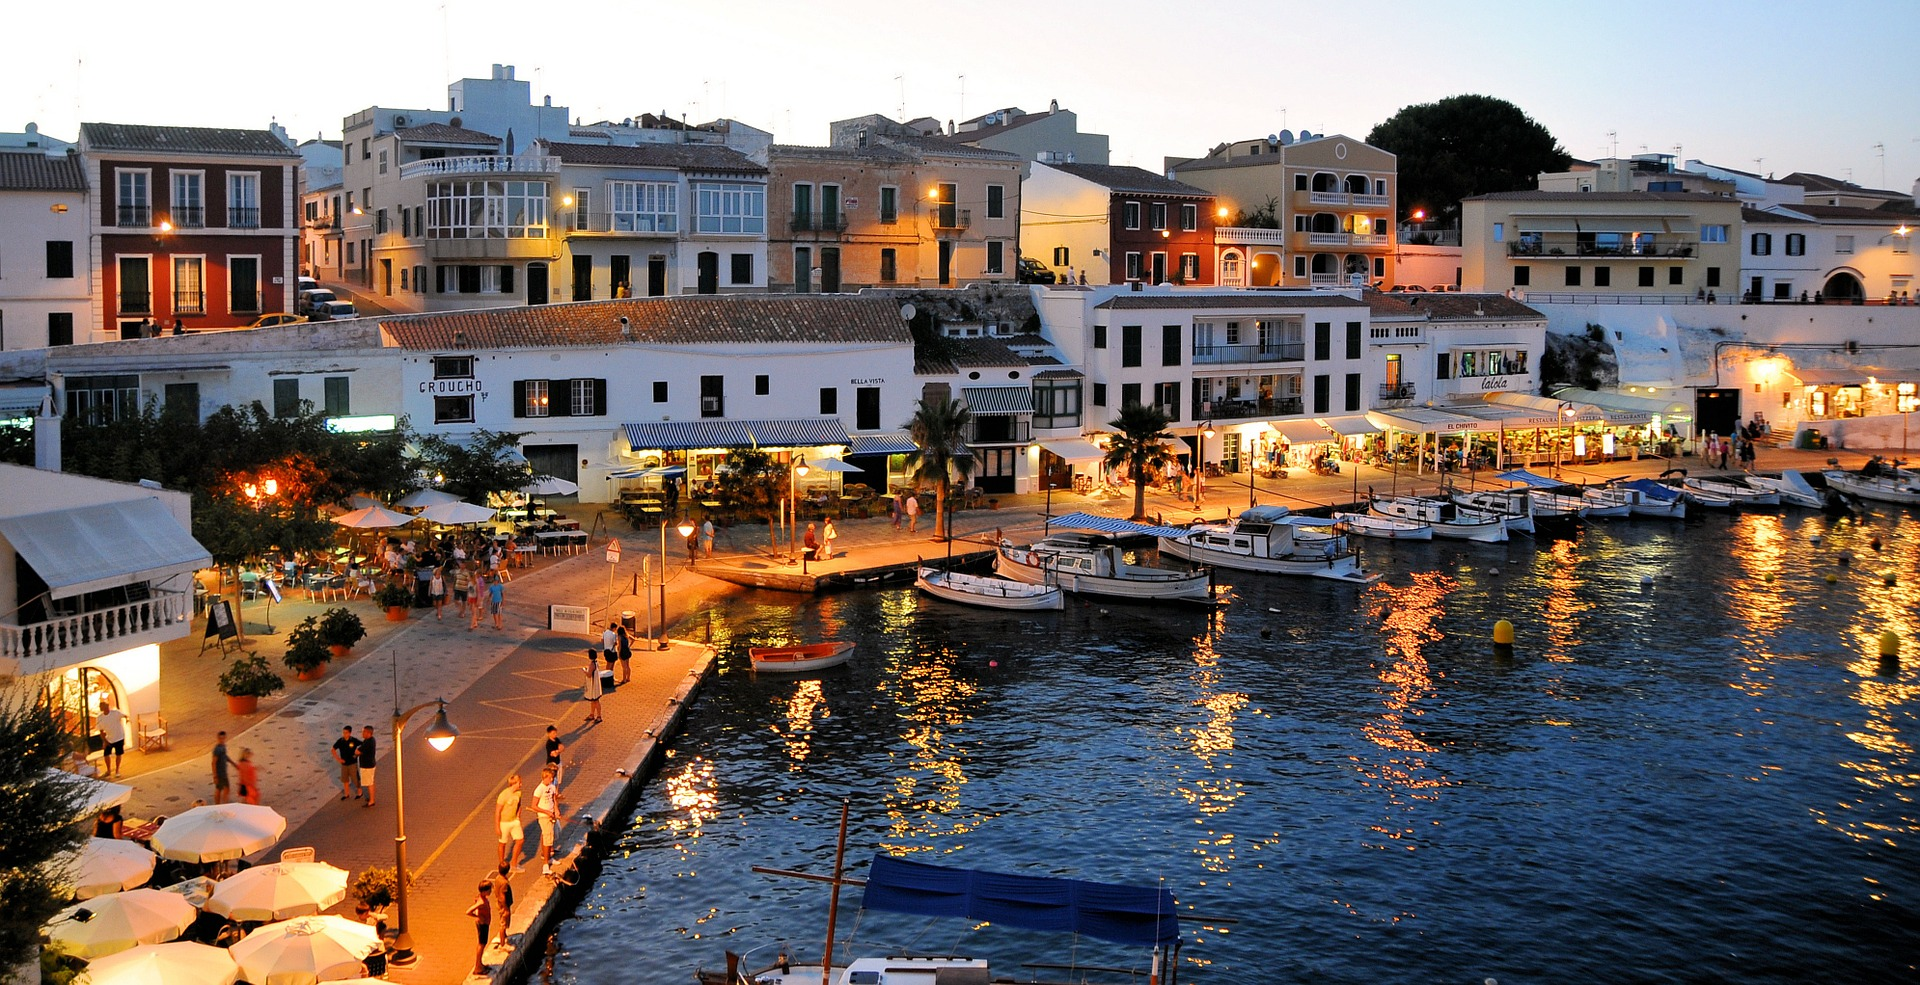 evening shot of harbour in Menorca with lights on the boardwalk and boats at dock